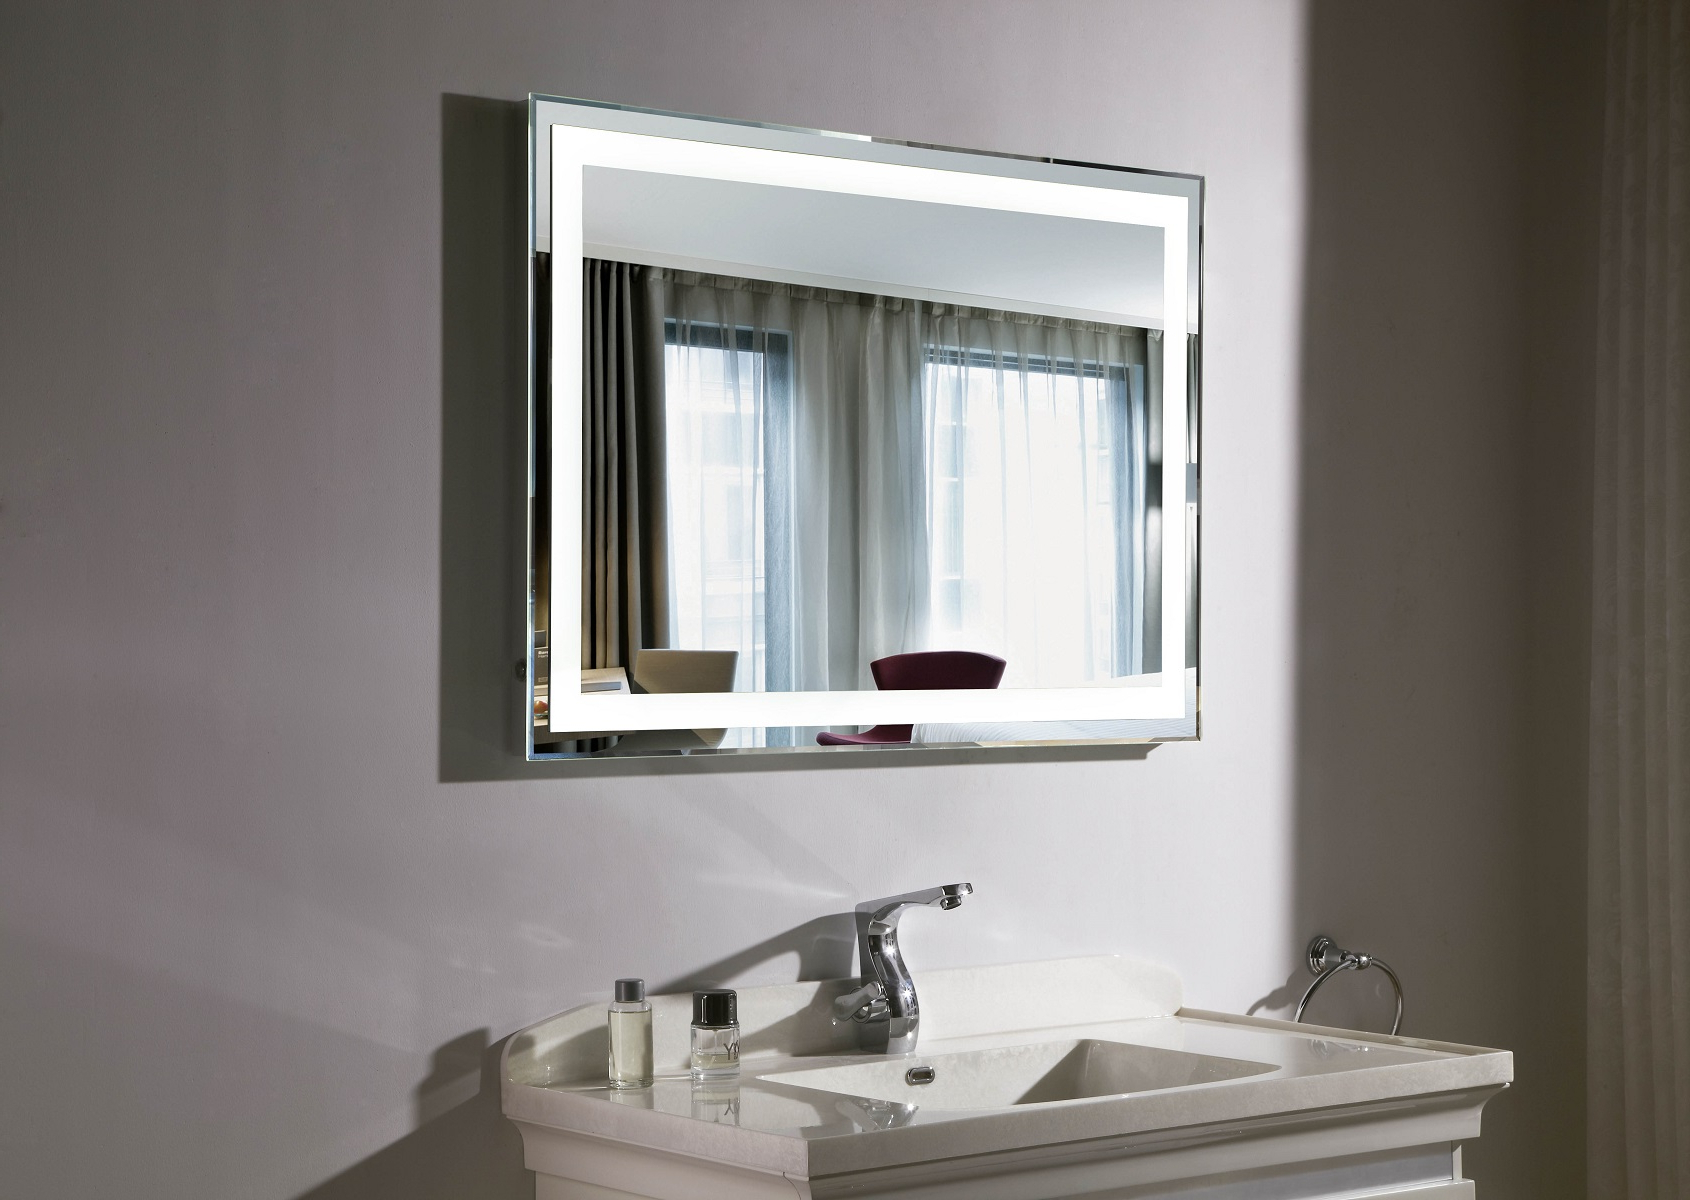 Budapest Iii Lighted Vanity Mirror Led Bathroom Mirror Regarding Current Lighted Vanity Wall Mirrors (View 16 of 20)